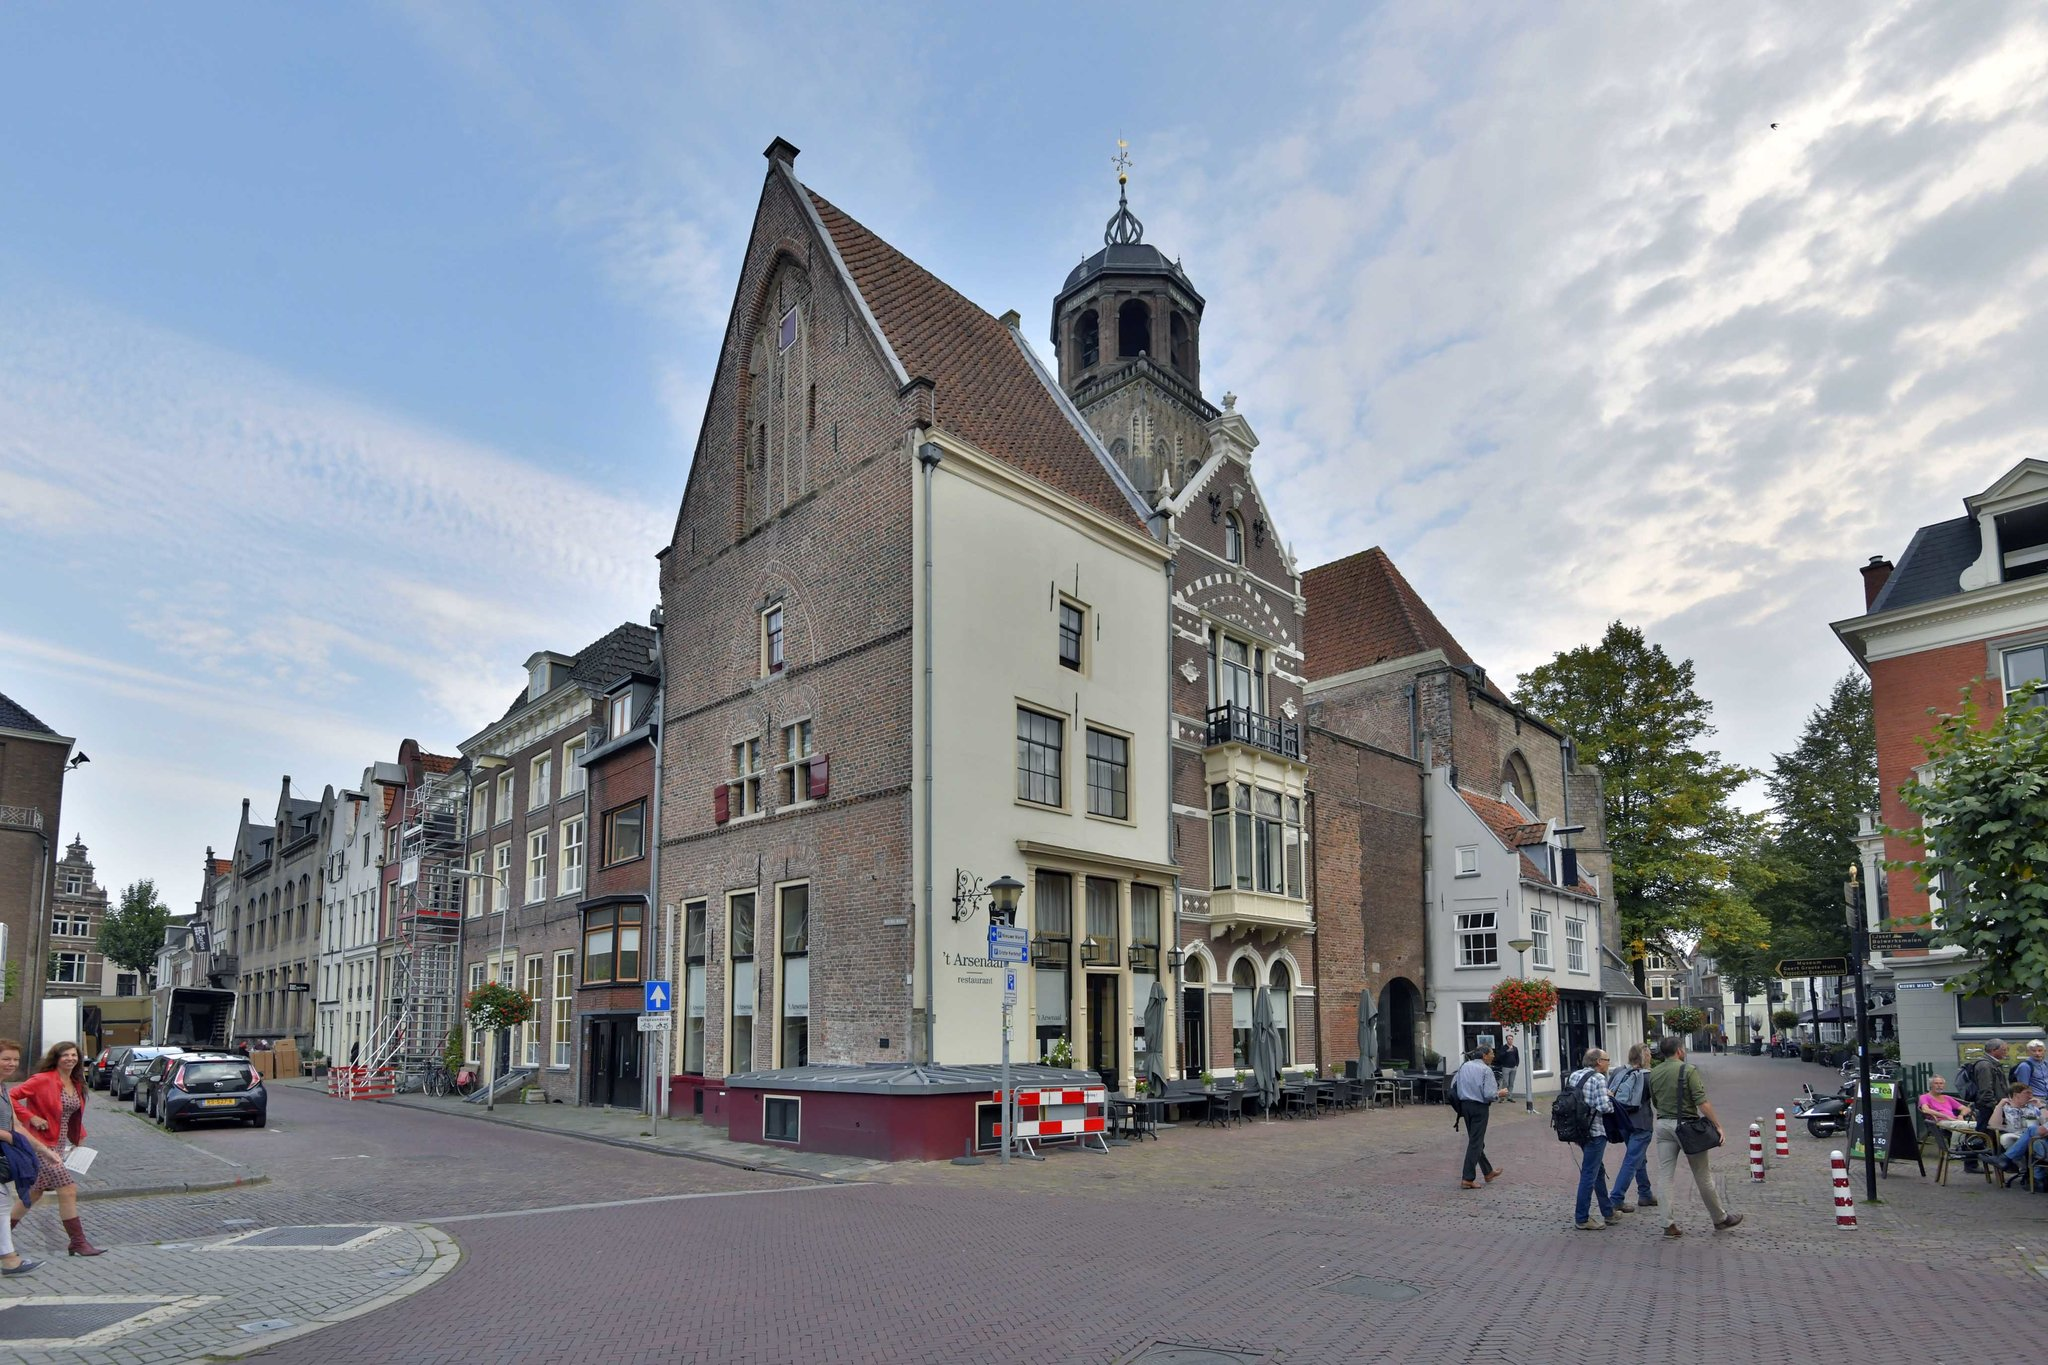 deventer-hofstraat-4209525-foto-4.jpg